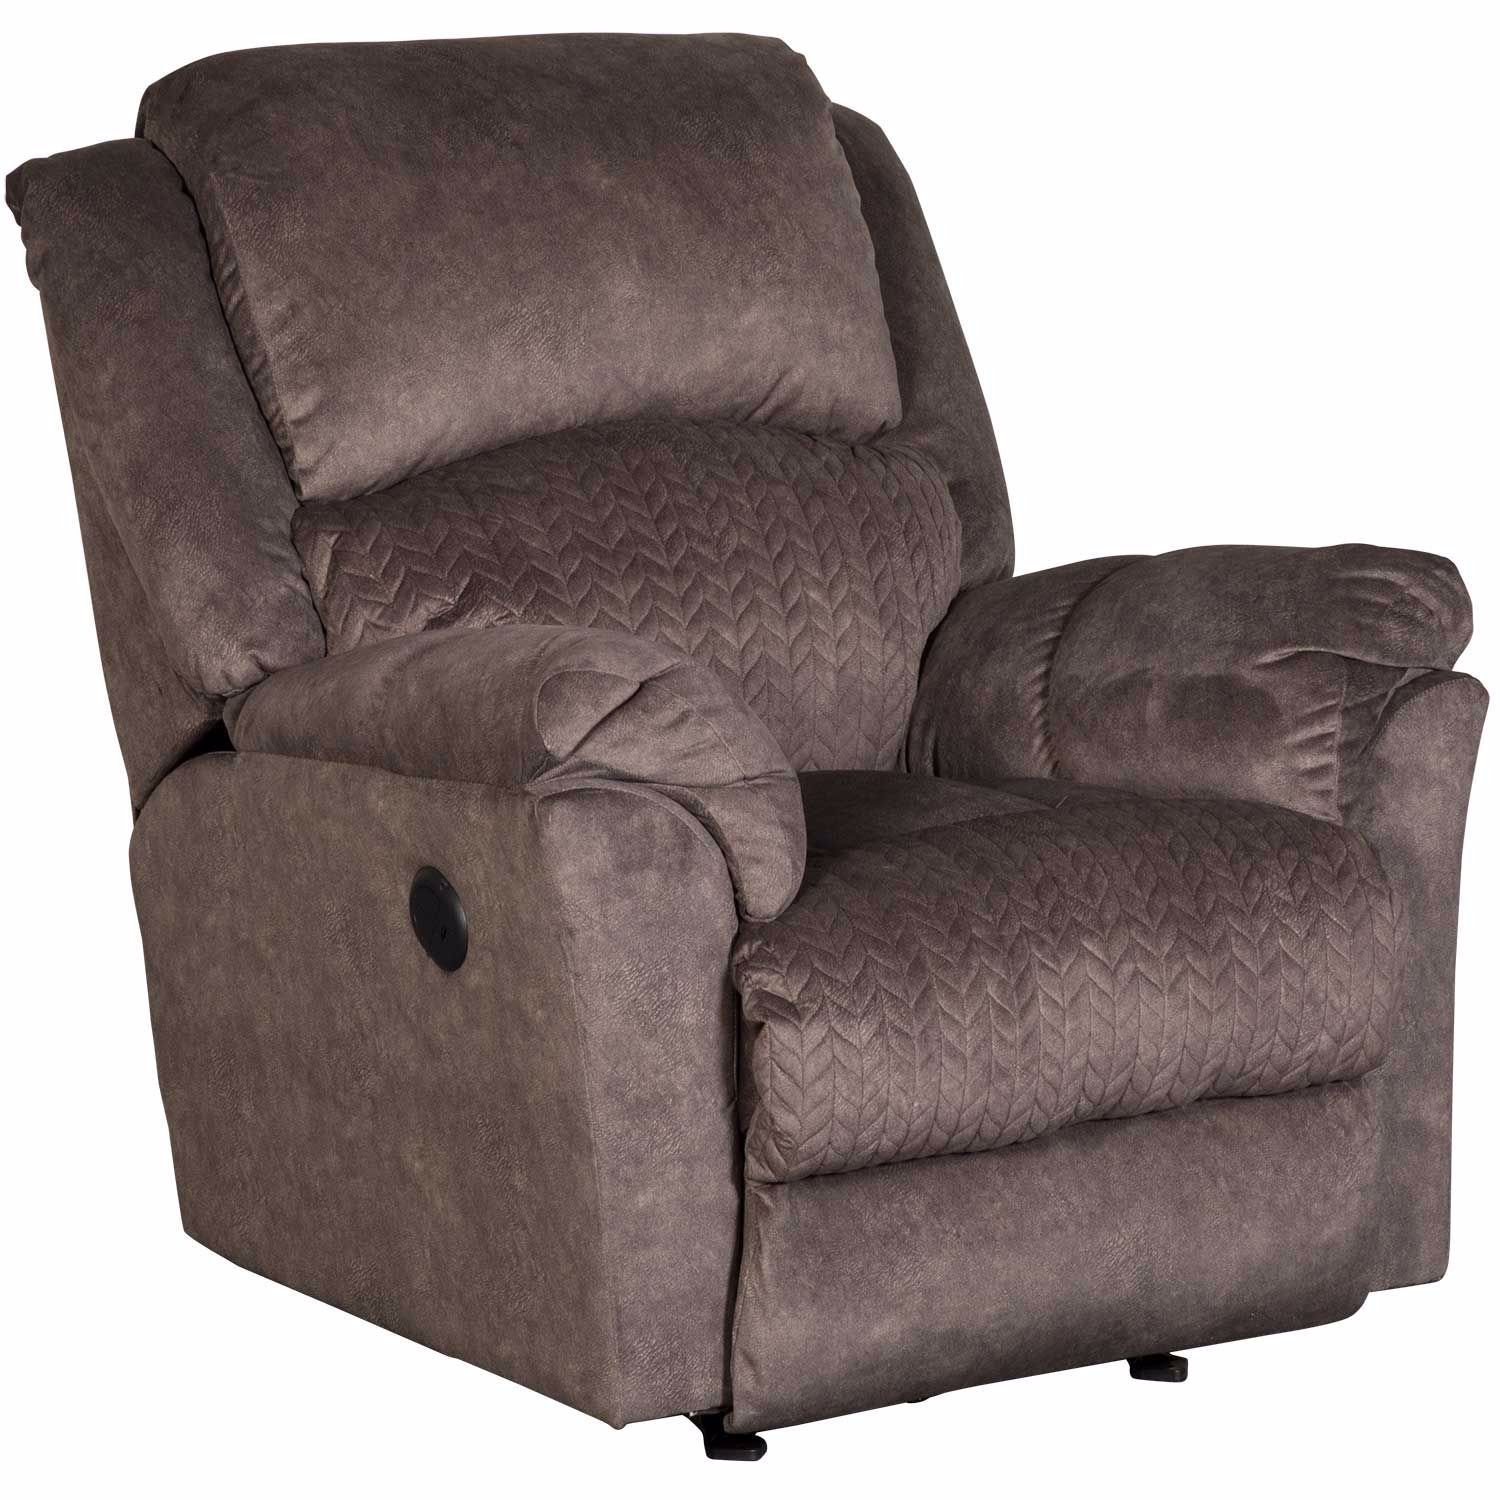 Picture of Chocolate Power Rocker Recliner